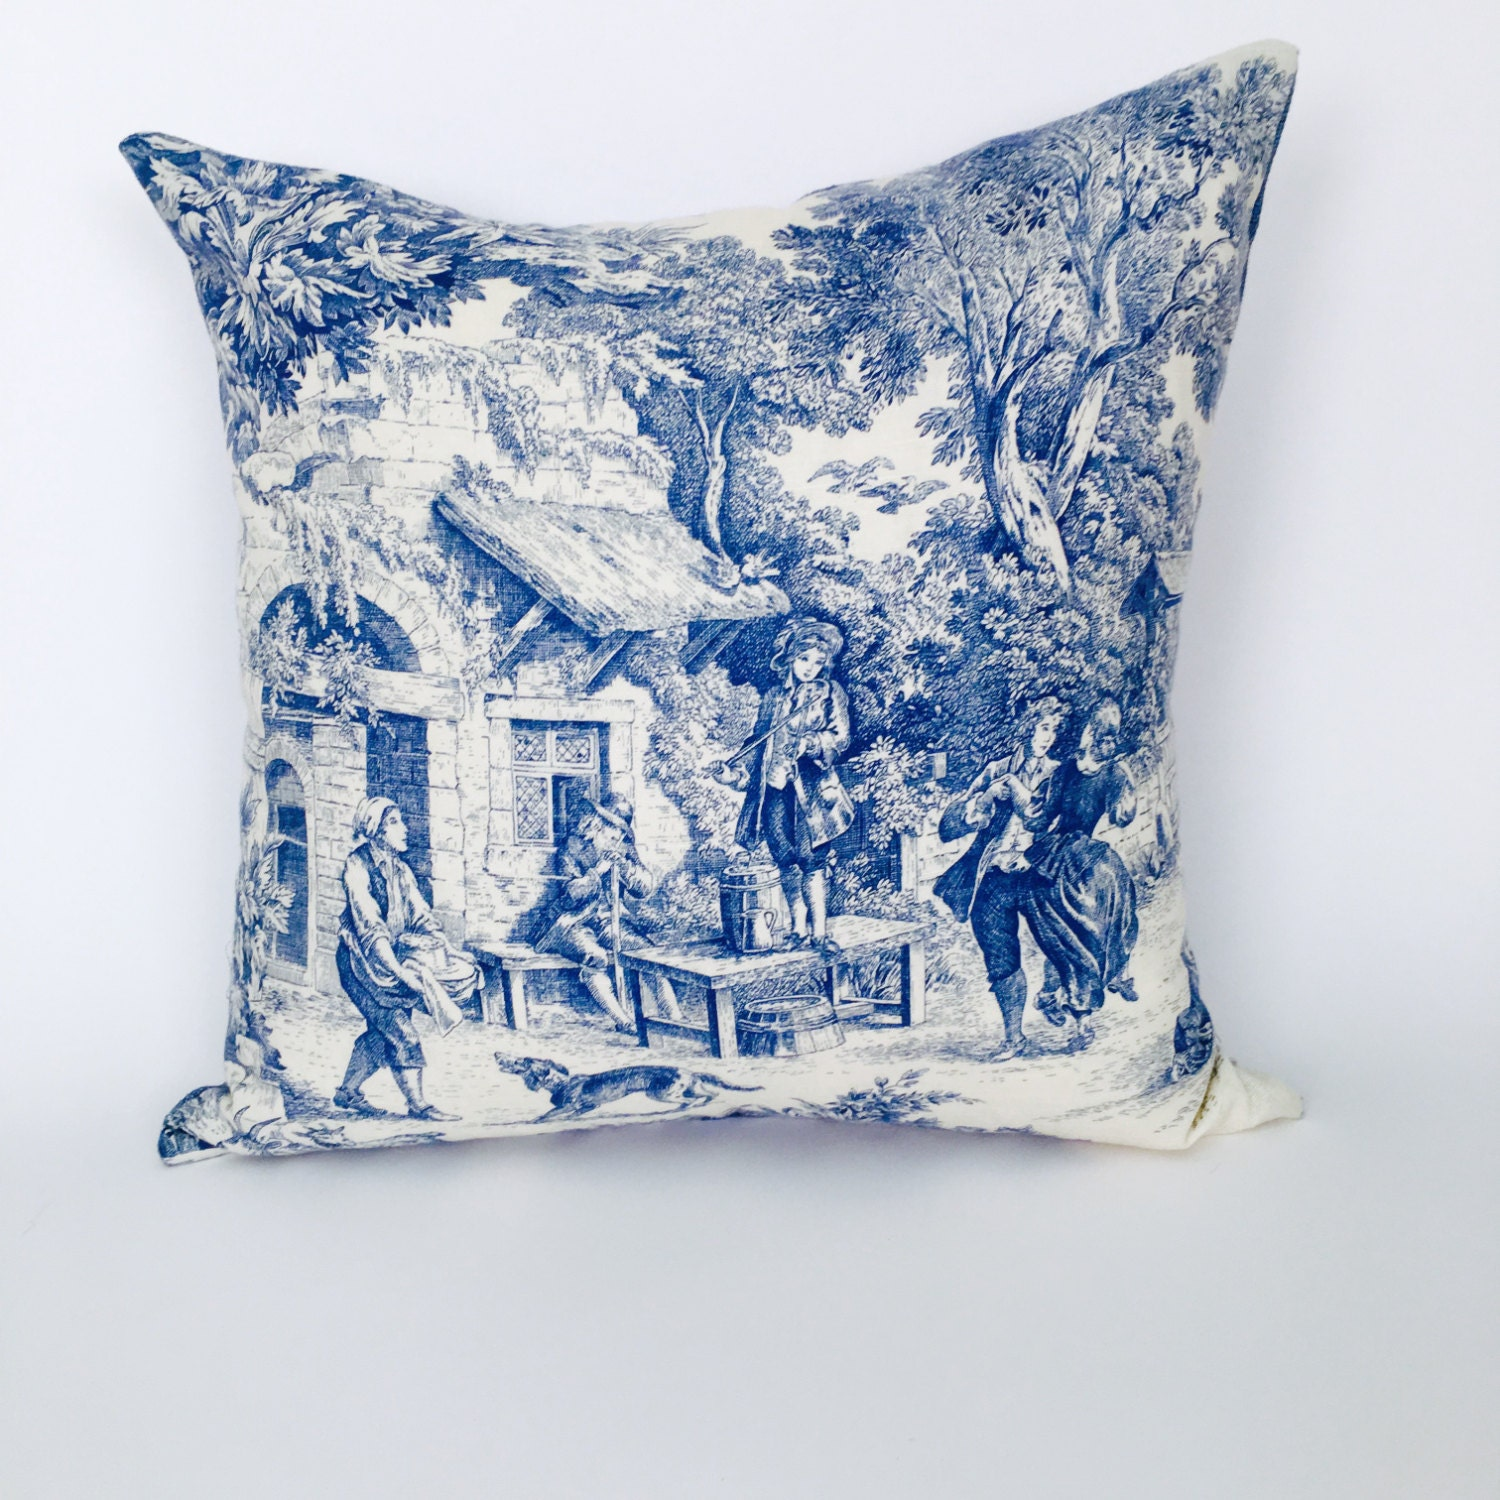 blue toile decorative throw pillow inserts included p 2 116. Black Bedroom Furniture Sets. Home Design Ideas